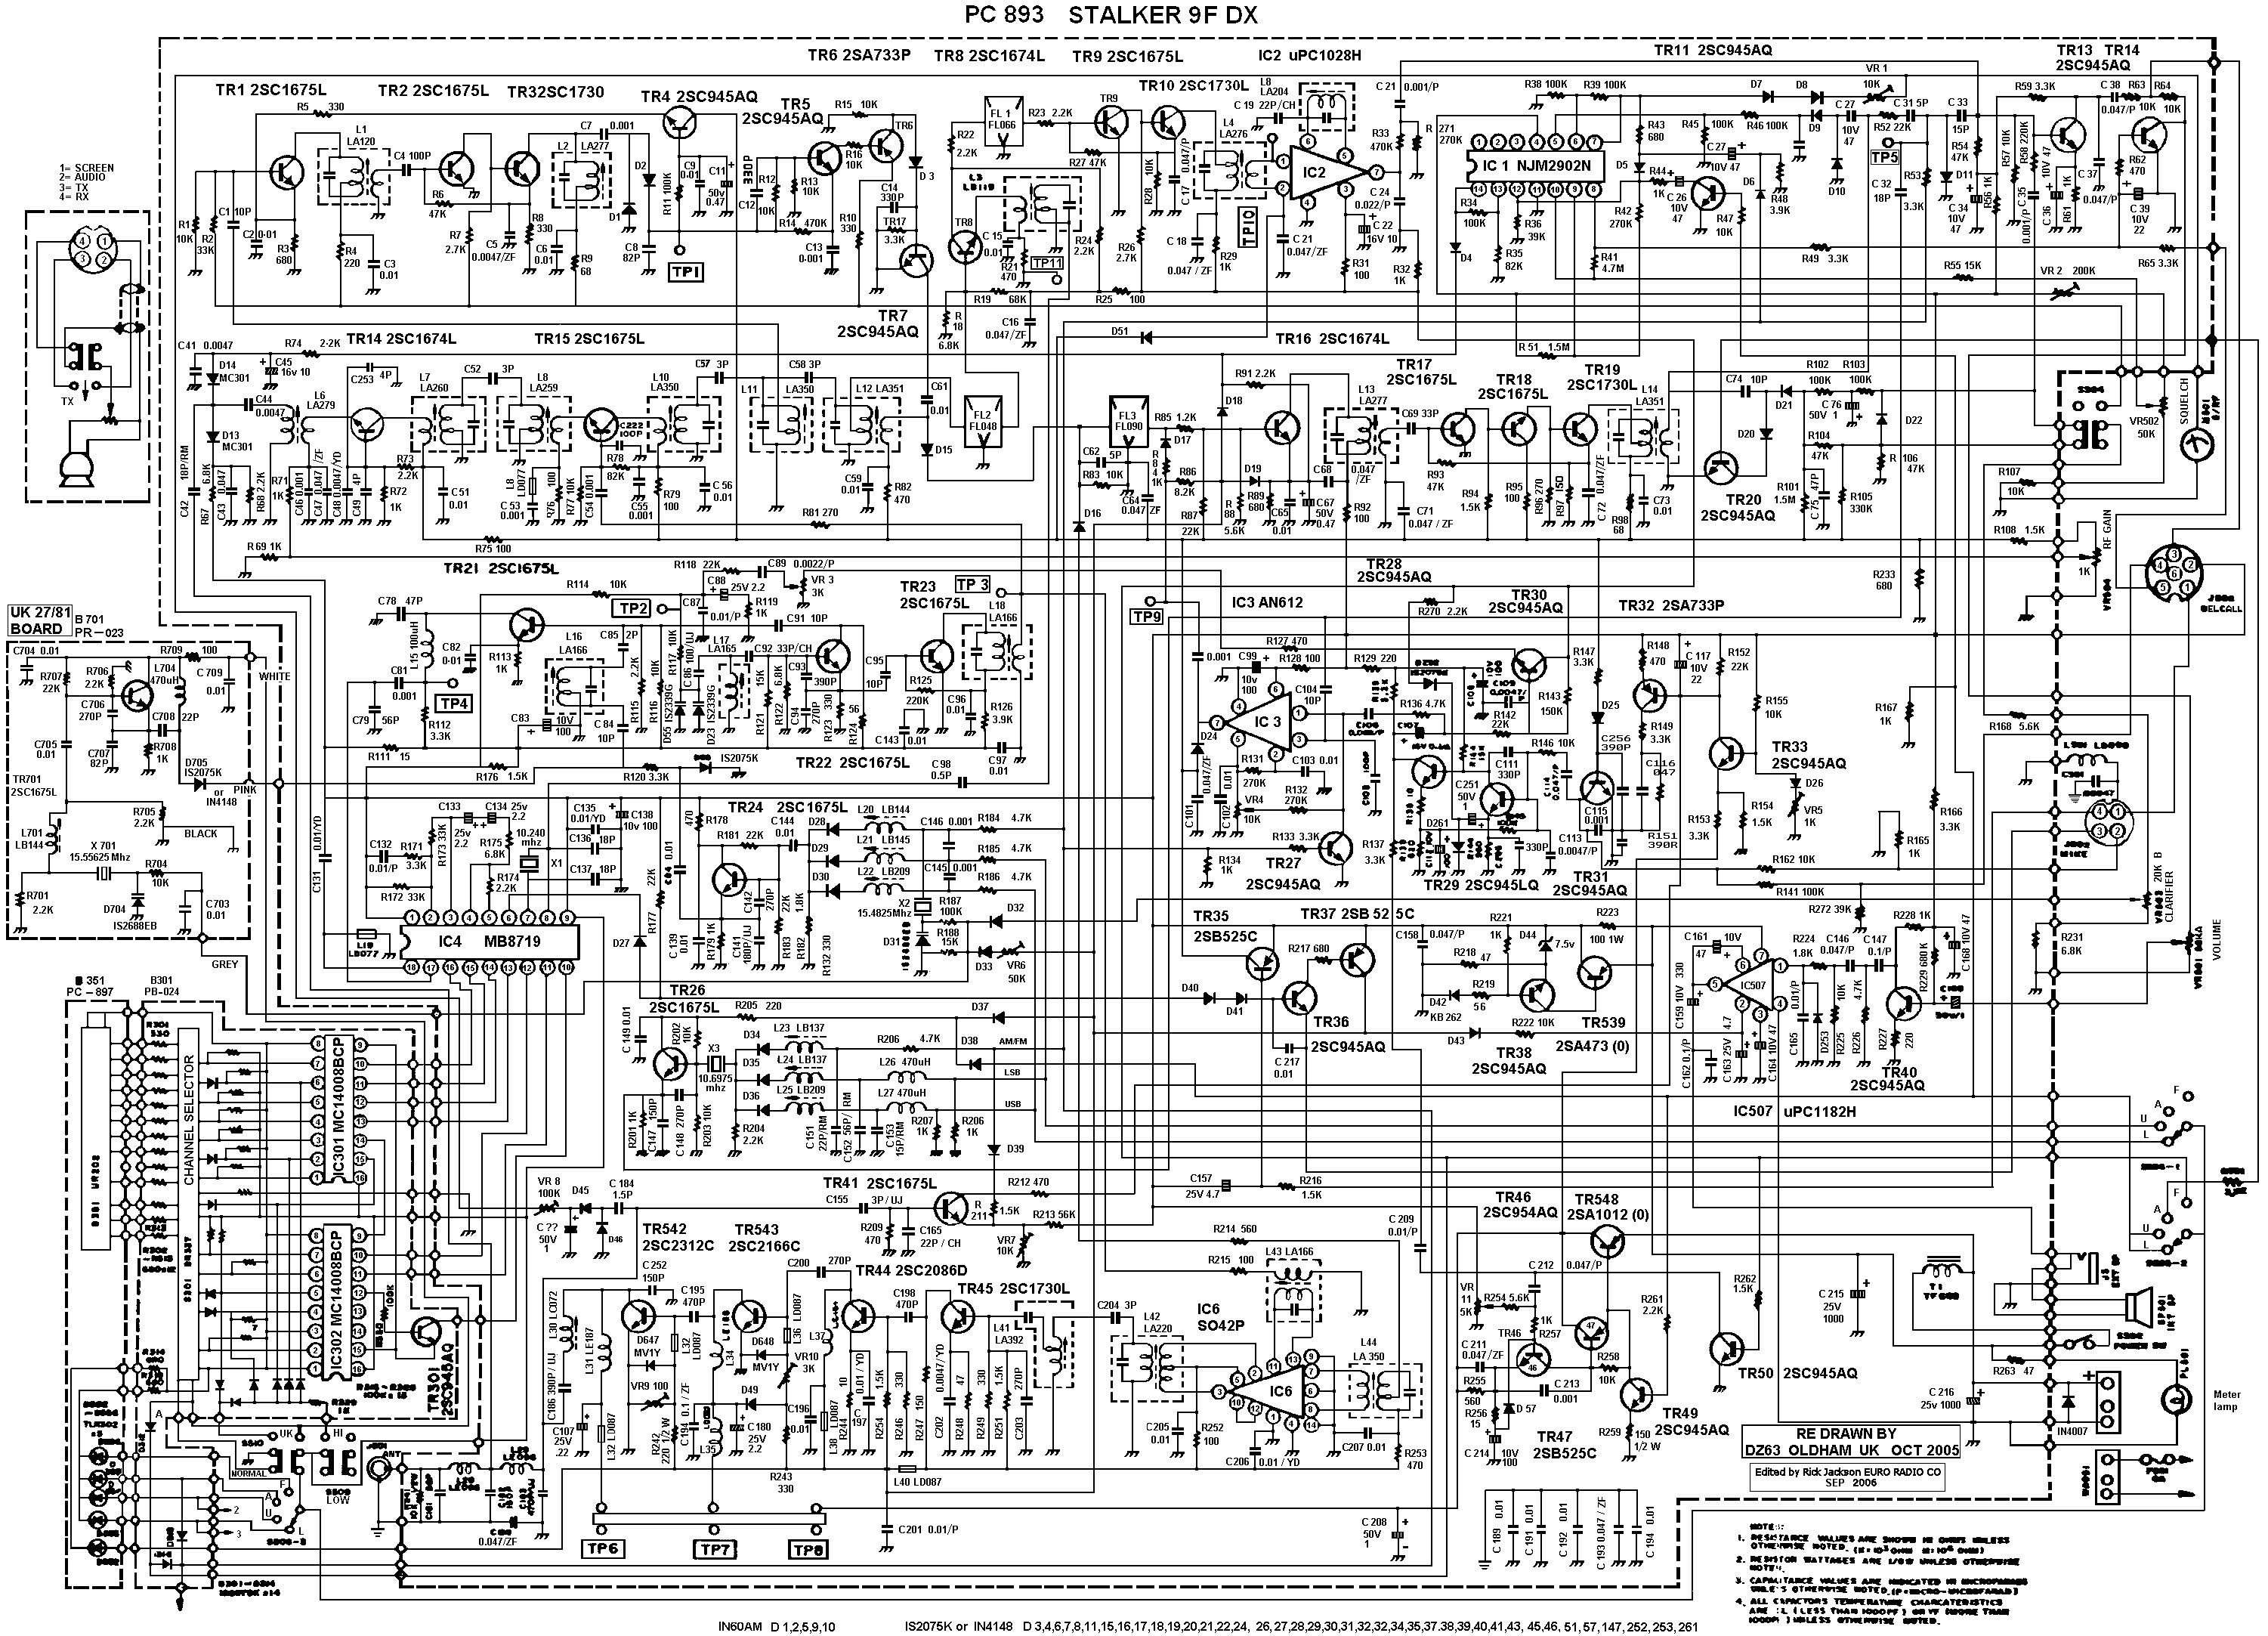 381f91856c8e3d5a8624ba977cca4625 image result for circuit diagram client_iot_平面 pinterest circuit diagram pdf at crackthecode.co